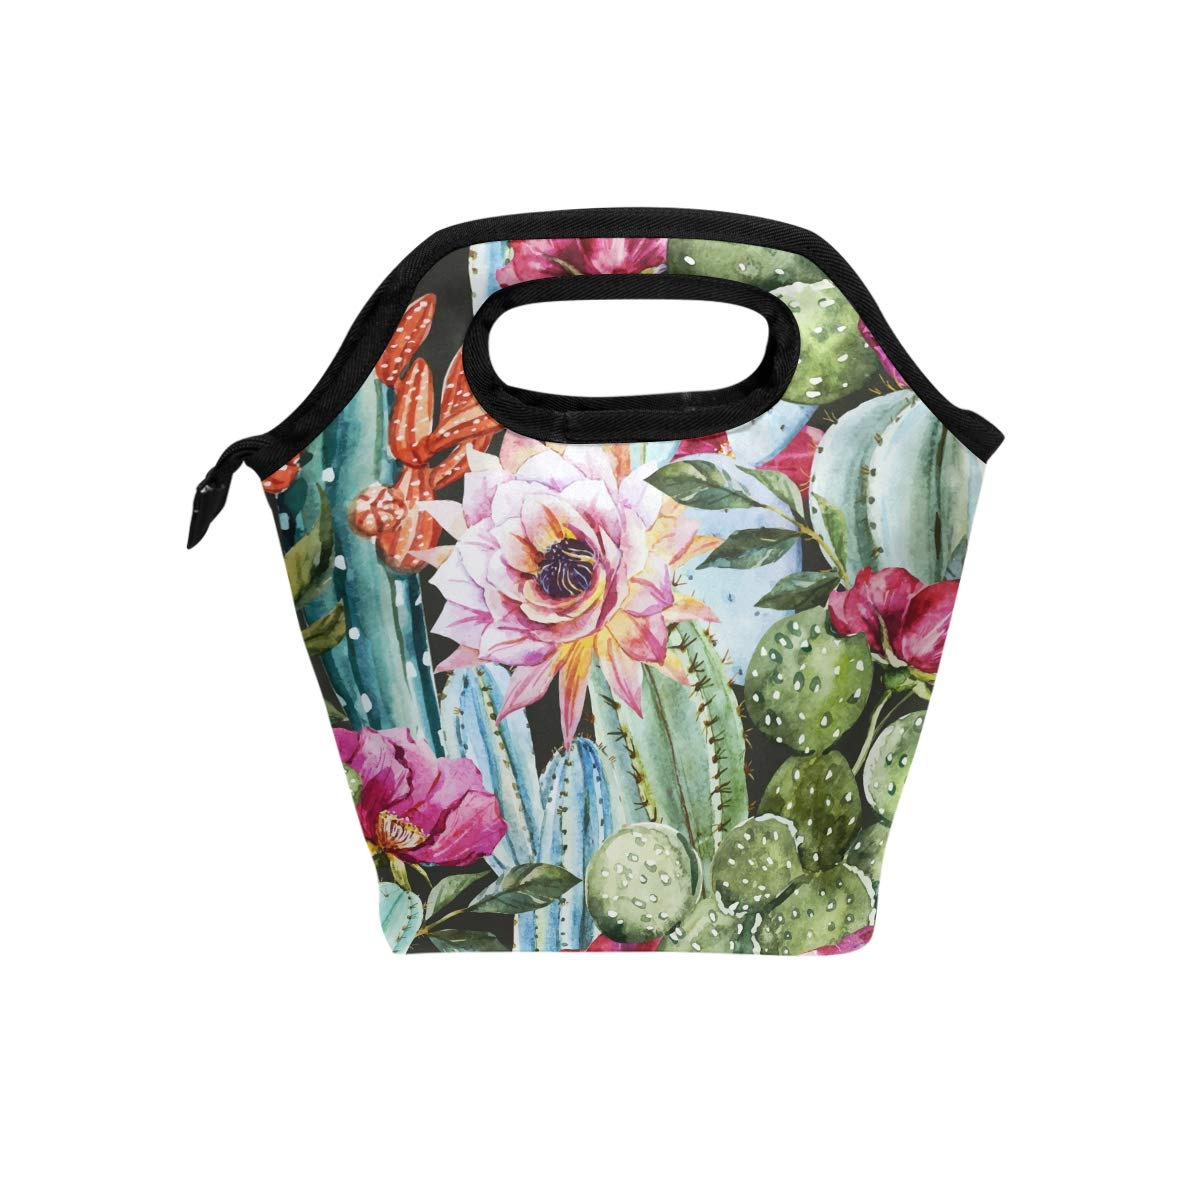 Naanle Floral Cactus Insulated Zipper Lunch Bag Cooler Tote Bag for Adult Teens Kids Girls Boys Men Women, Watercolor Cactus Lunch Boxes Lunchboxes Meal Prep Handbag for Outdoors School Office